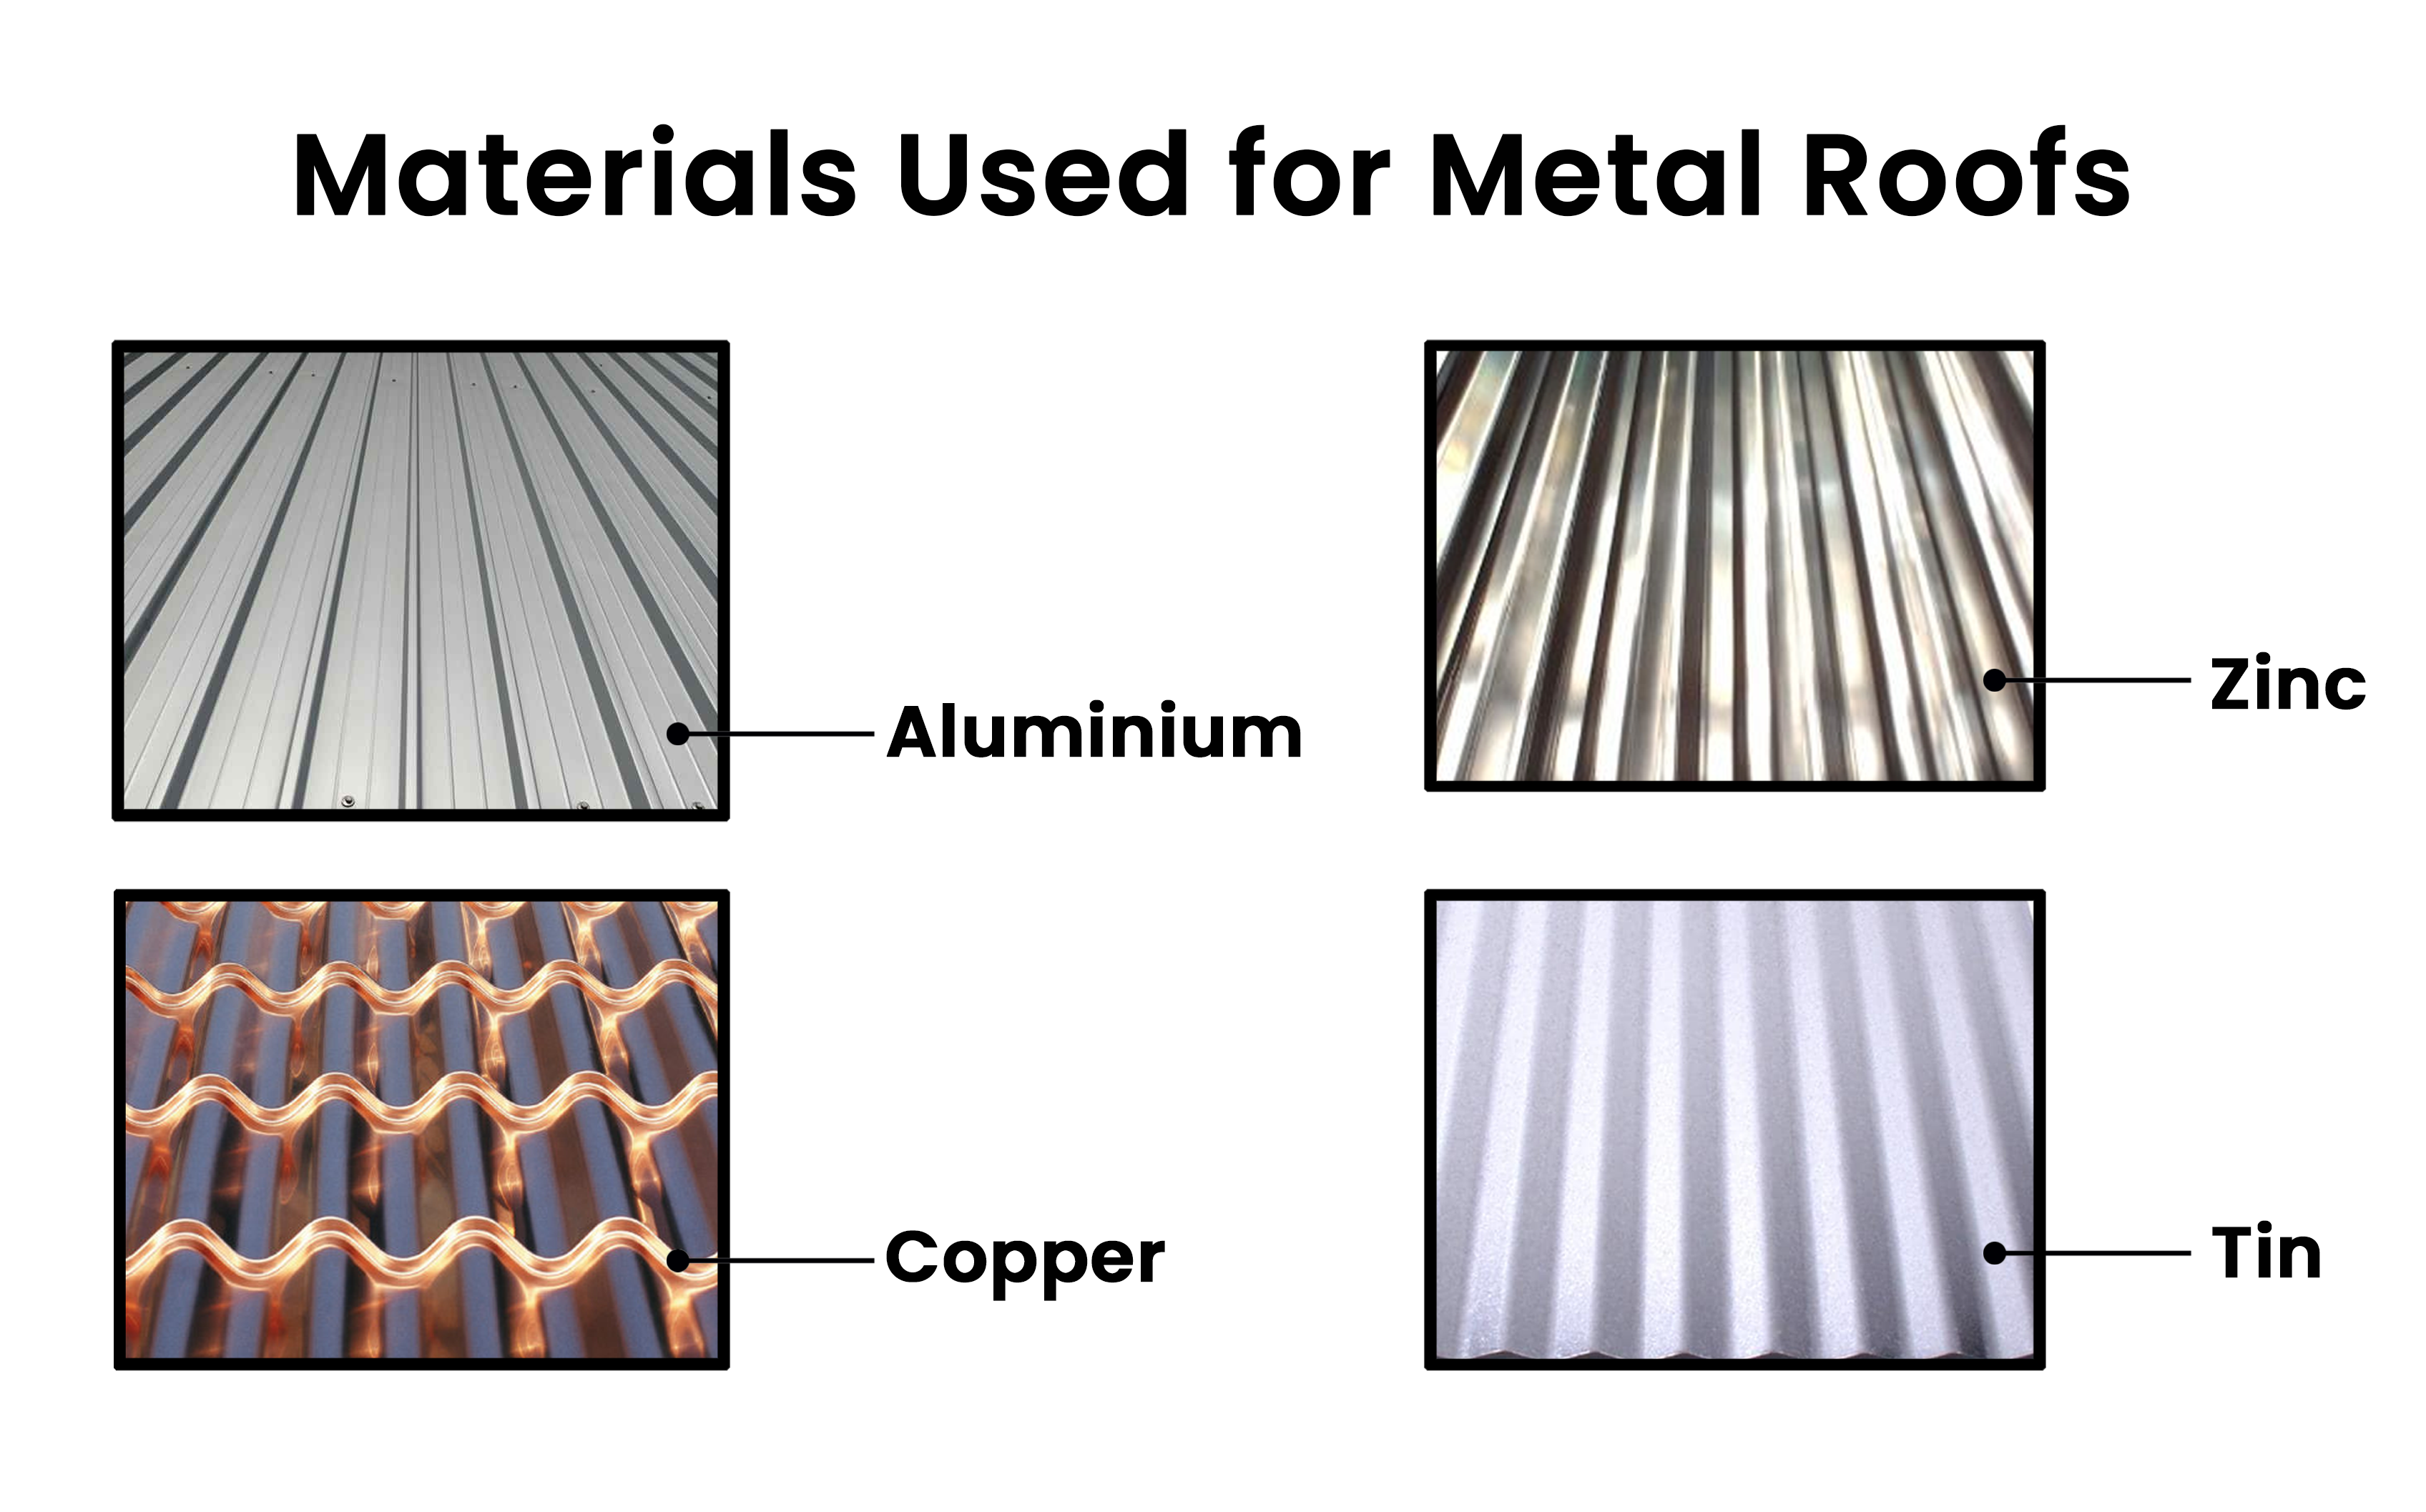 Aluminum, Copper, Zinc and Tin are common materials used for metal roofing.